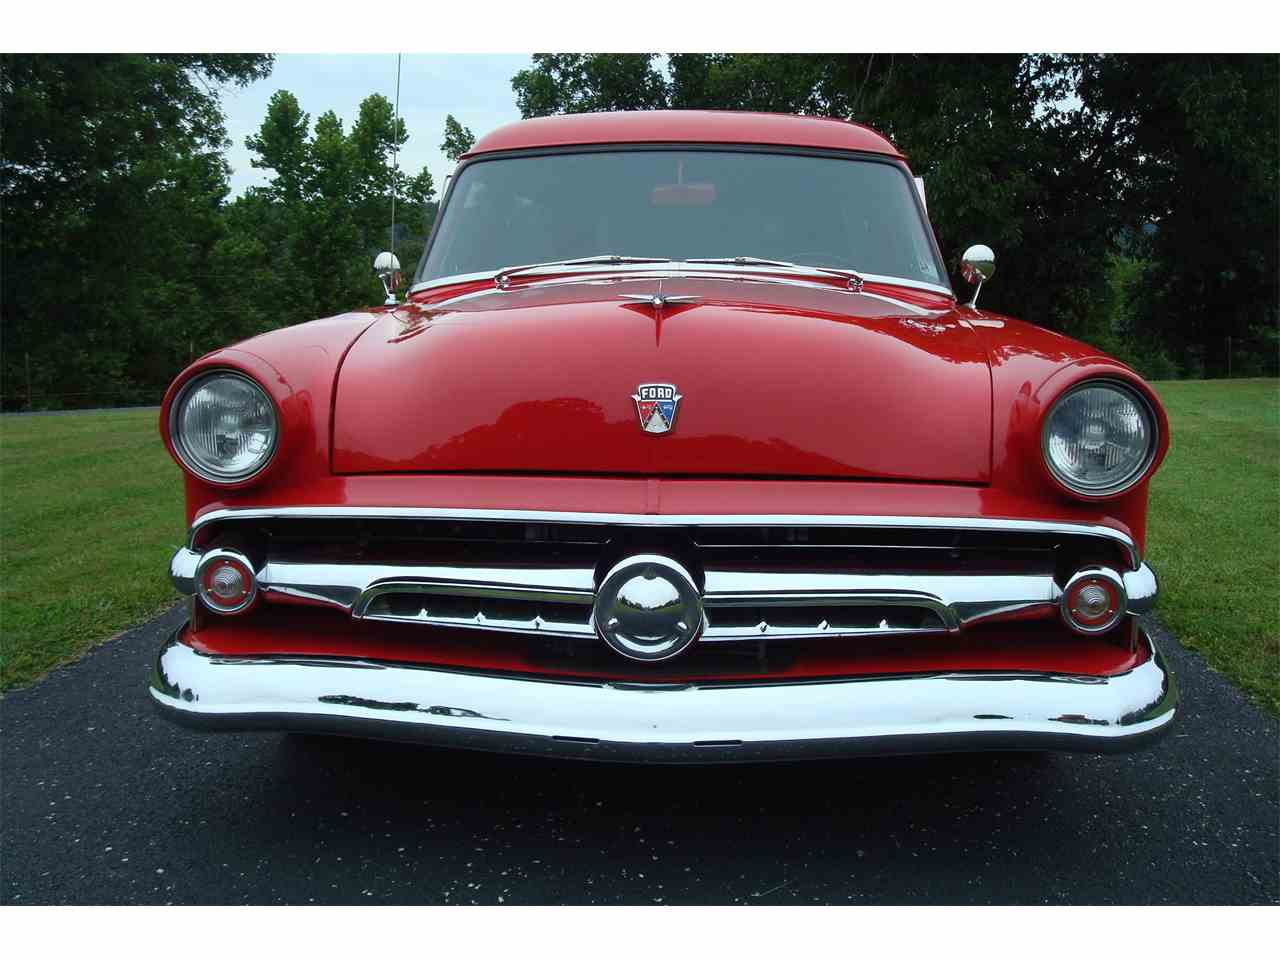 Large Picture of Classic '54 Ford Ranch Wagon located in Arkansas - $32,000.00 Offered by a Private Seller - C0WR